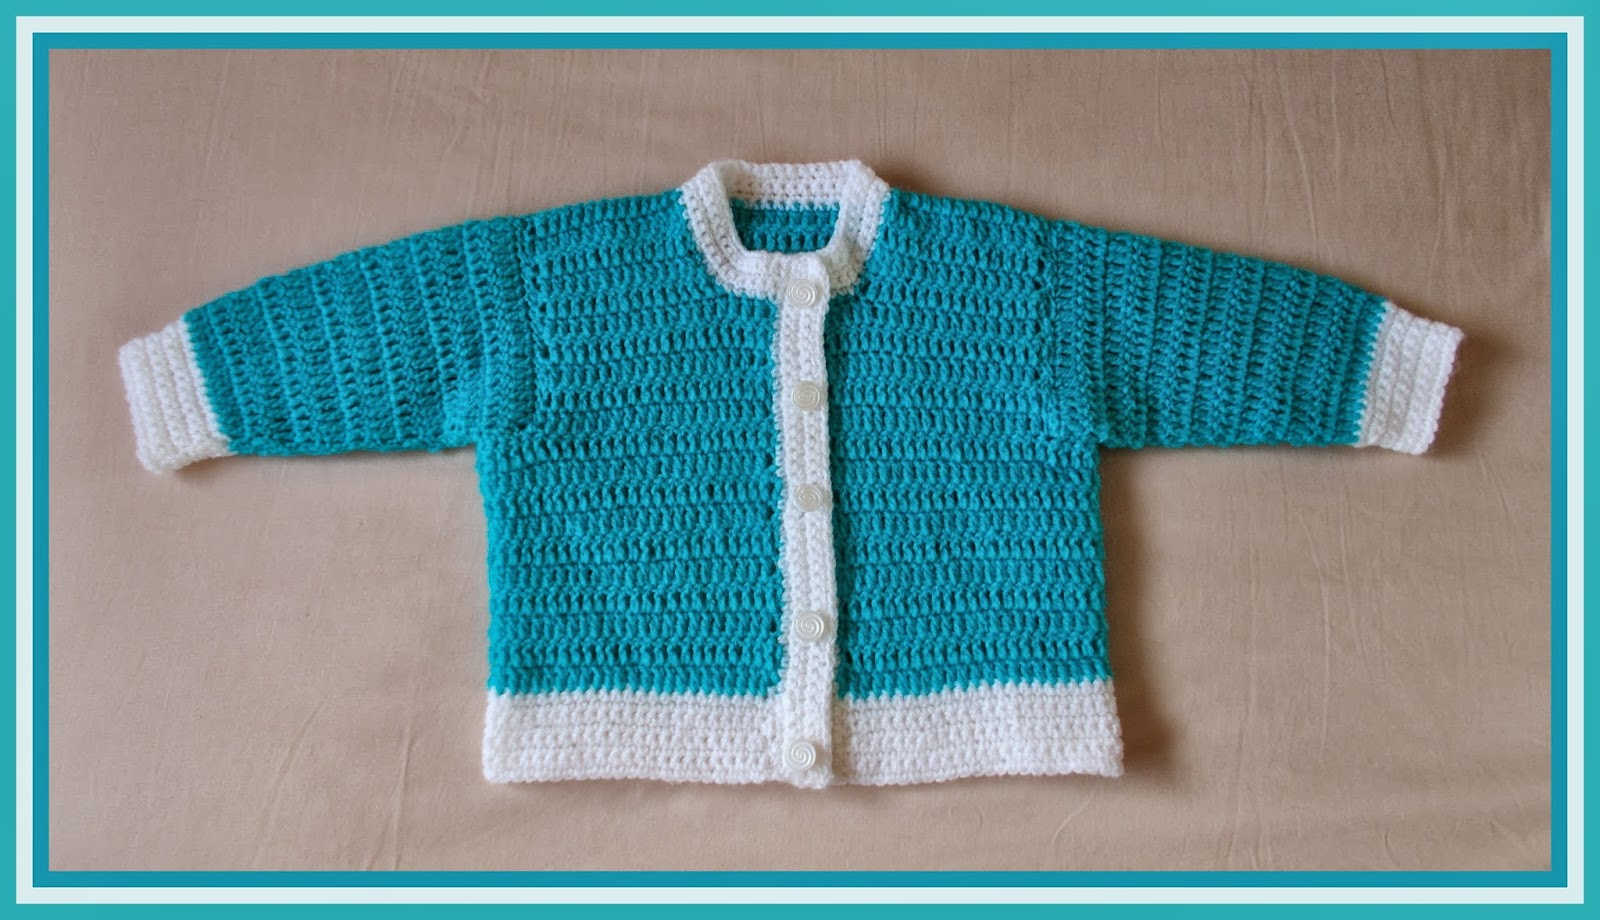 7253fae510f9 ... mariannas lazy daisy days Yin and Yang  stable quality 3171e 5ac4f  courtneysweater1.jpg  sells ccbda 9e5c5 Crochet Baby Cardigan Jacket ...